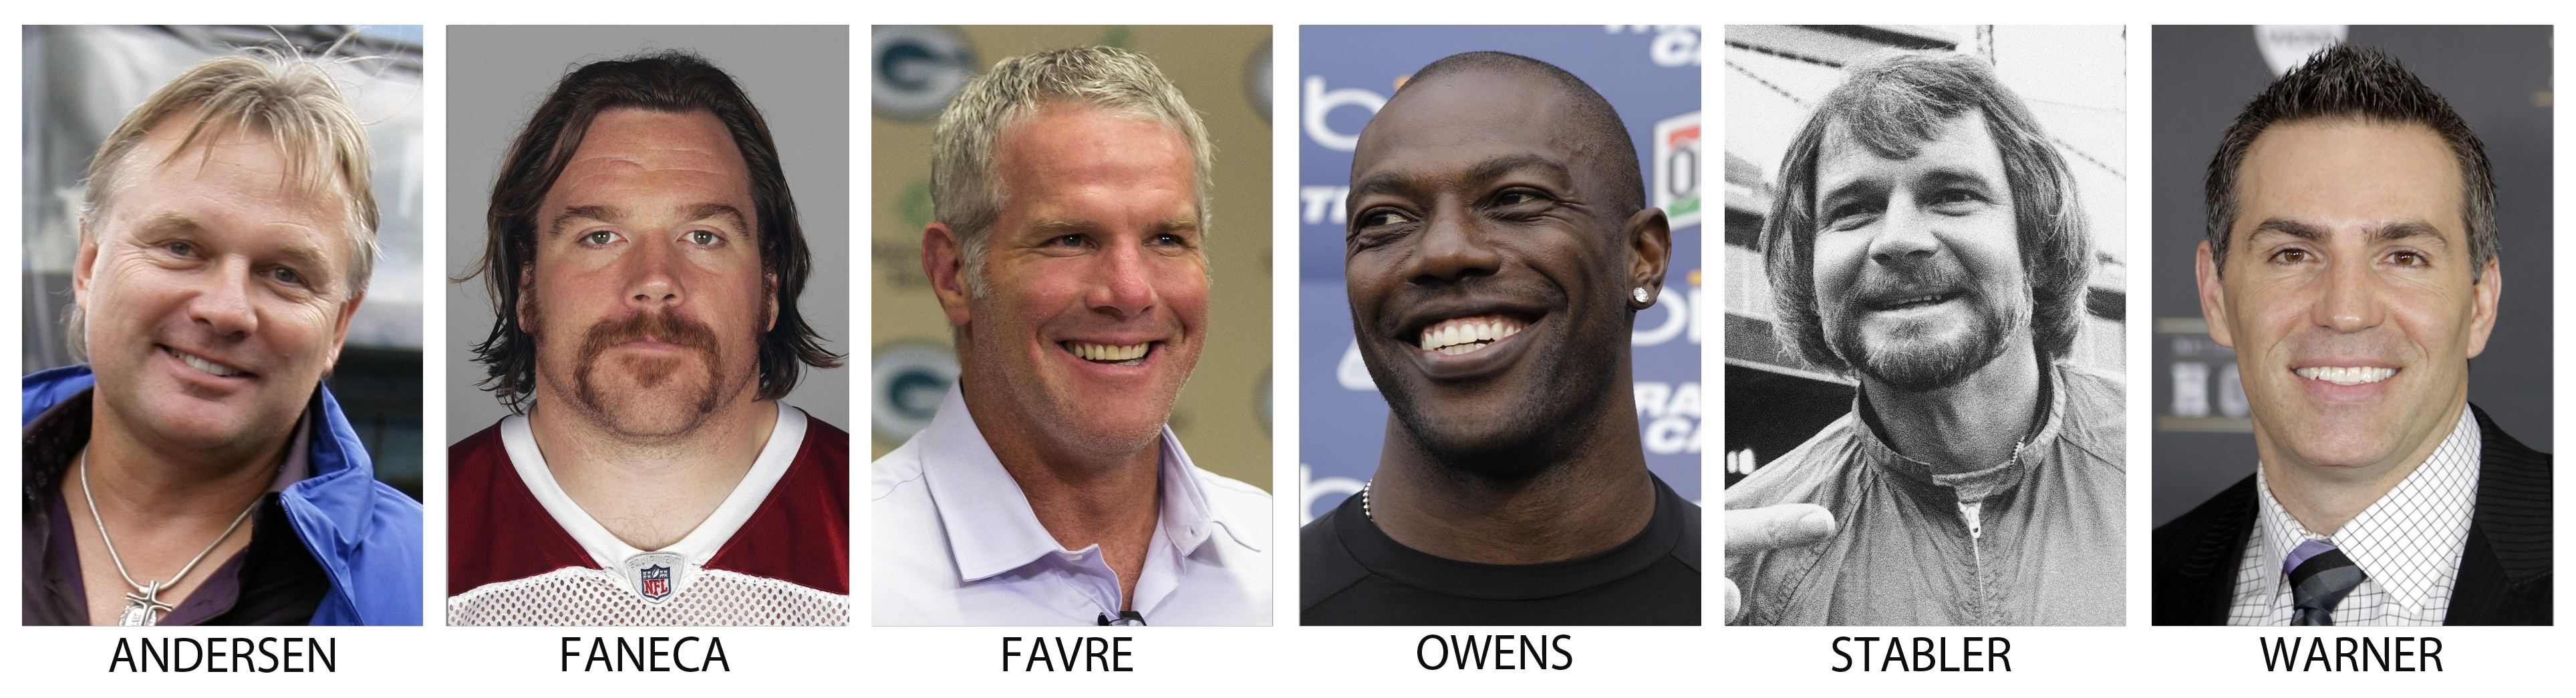 From left are file photos showing Morten Andersen, in 2009; Alan Faneca, in 2009; Brett Favre, in 2015; Terrell Owens, in 2012;Ken Stabler, in 1977 and Kurt Warner, in 2012. Brett Favre, Terrell Owens and Alan Faneca are semifinalists for the Pro Football